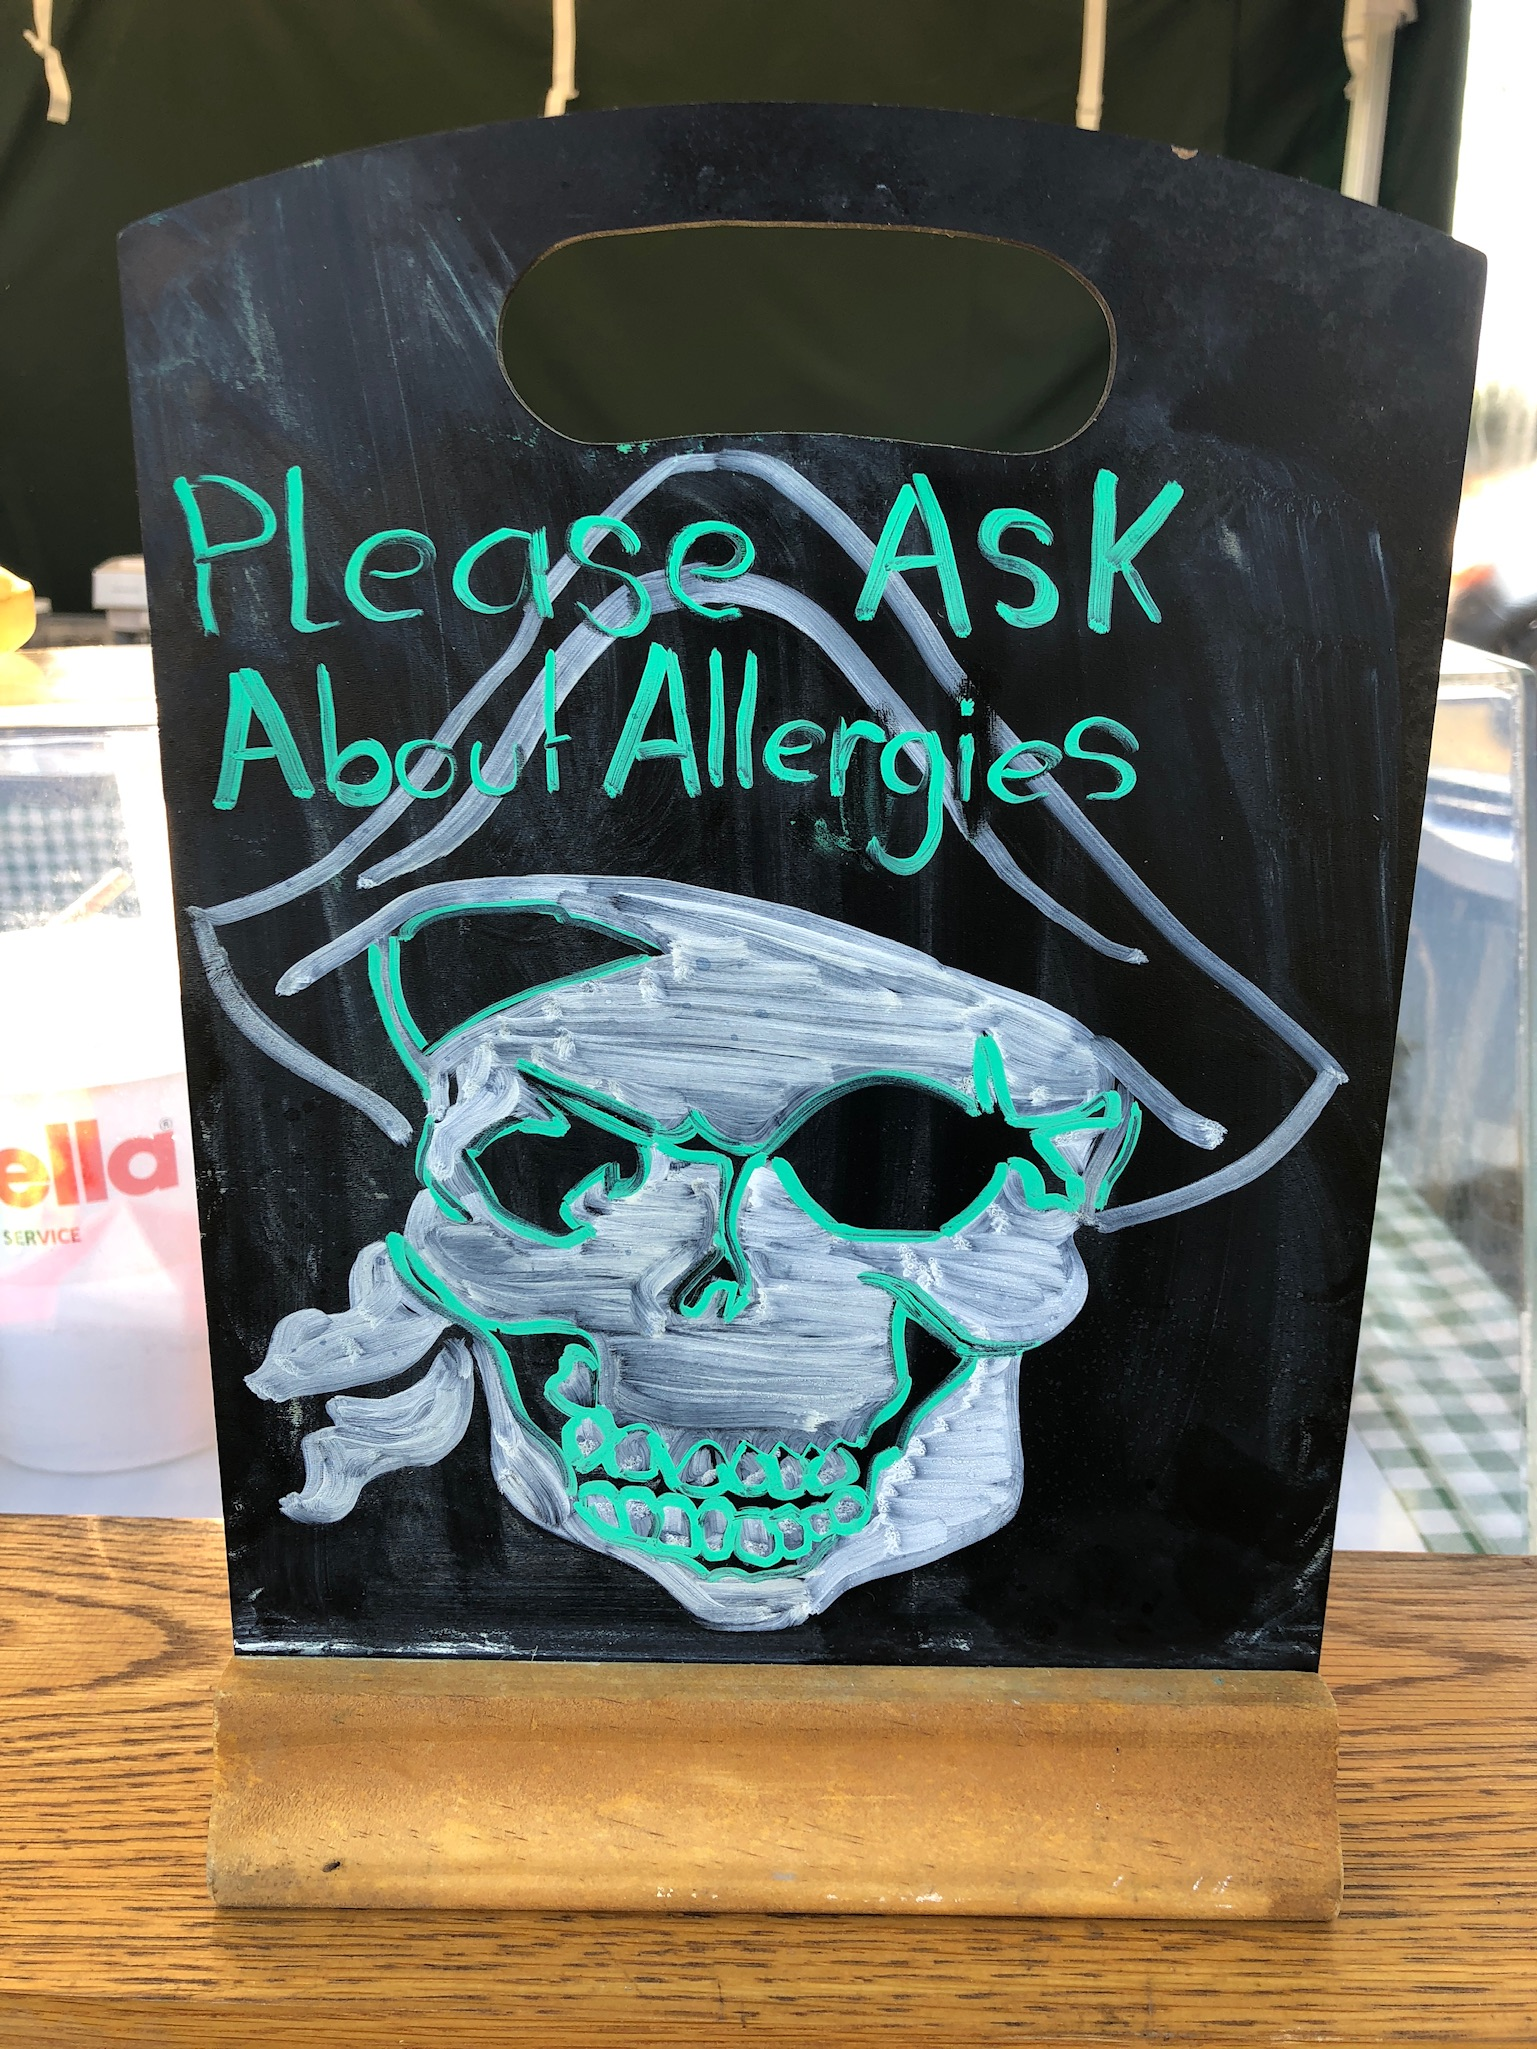 Pirate themed food allergies sign